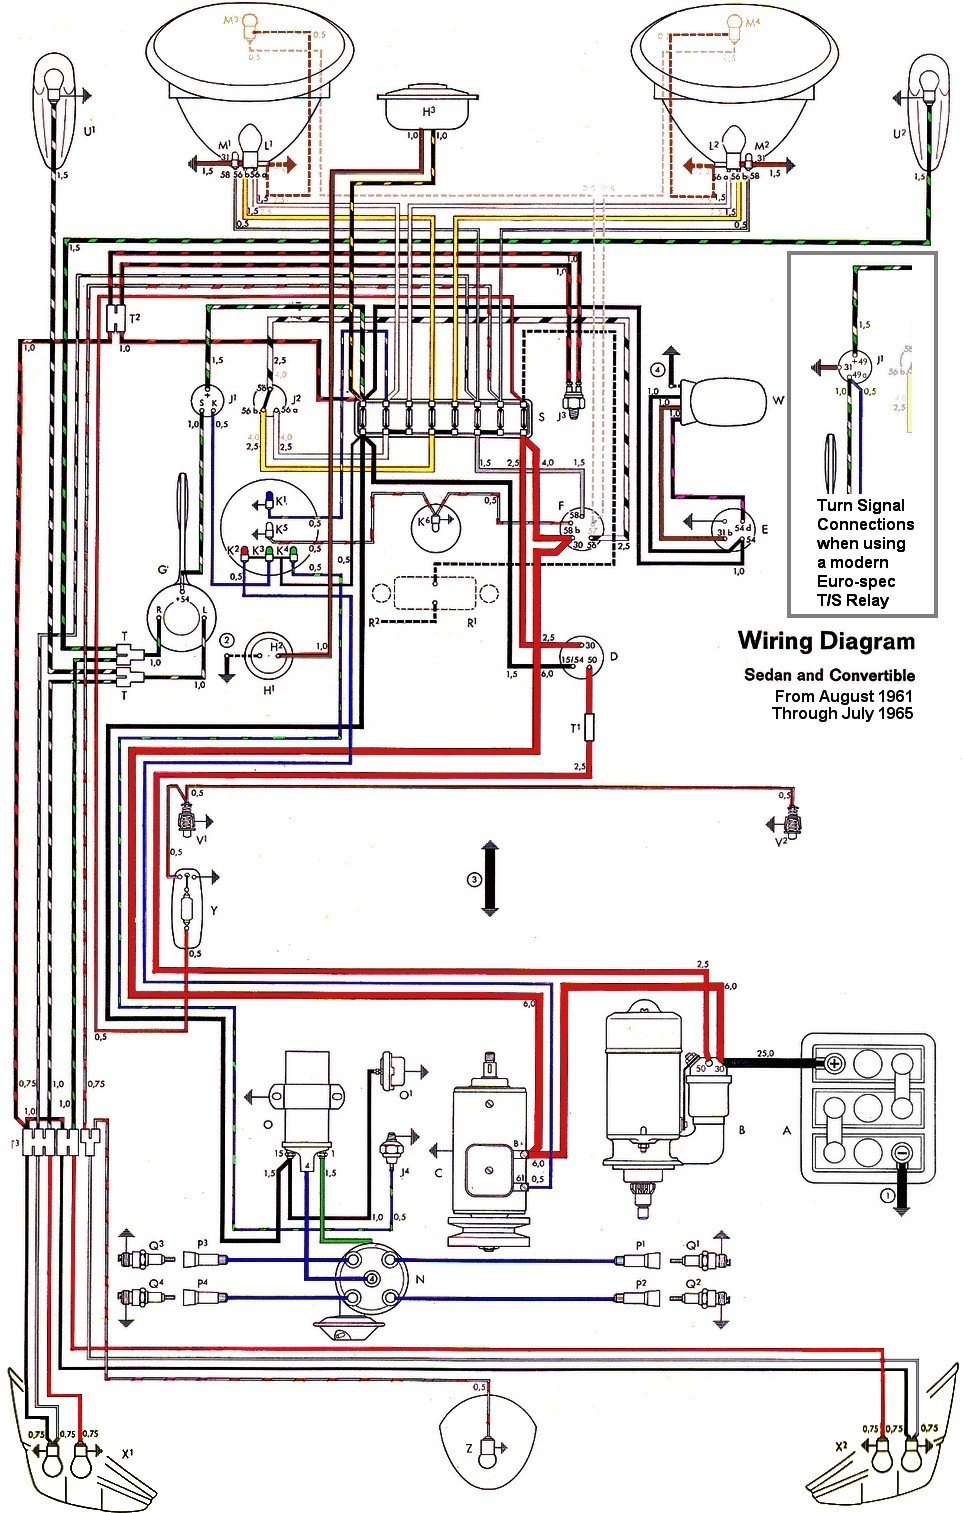 thesamba com type 1 wiring diagrams rh thesamba com VW Bug Wiring Harness VW Engine Wiring Diagram